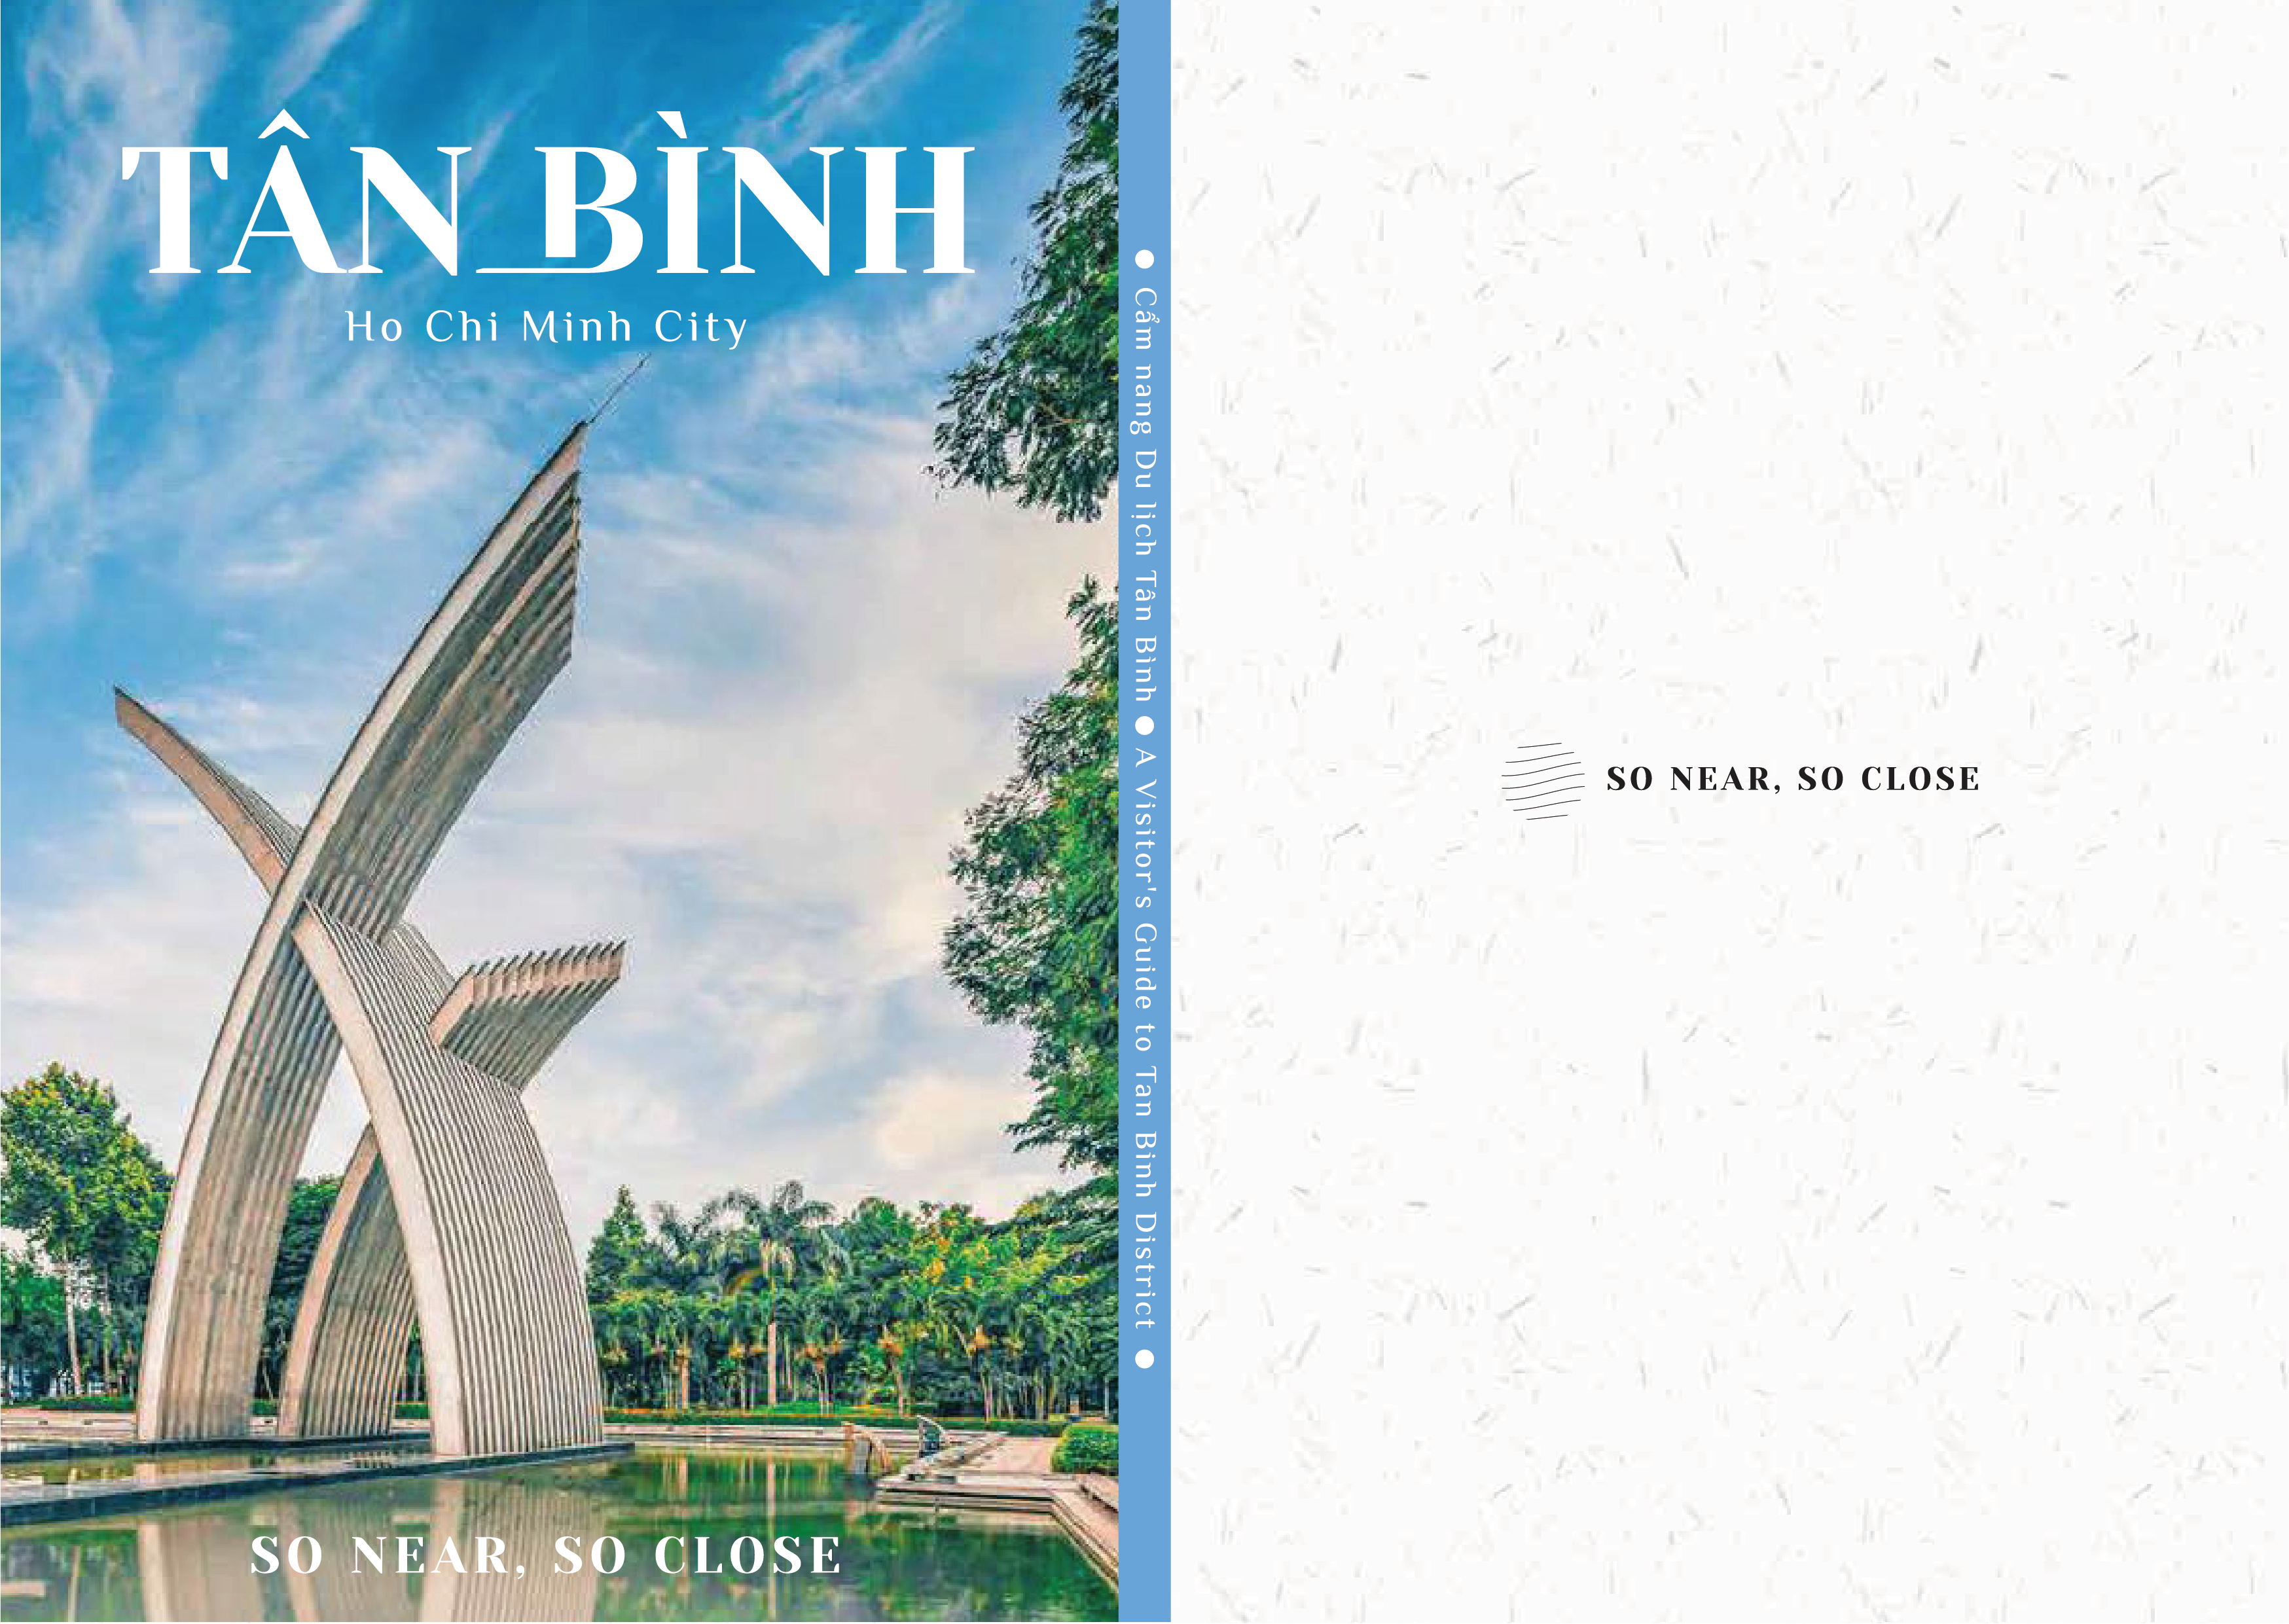 tan-binh-guide-01